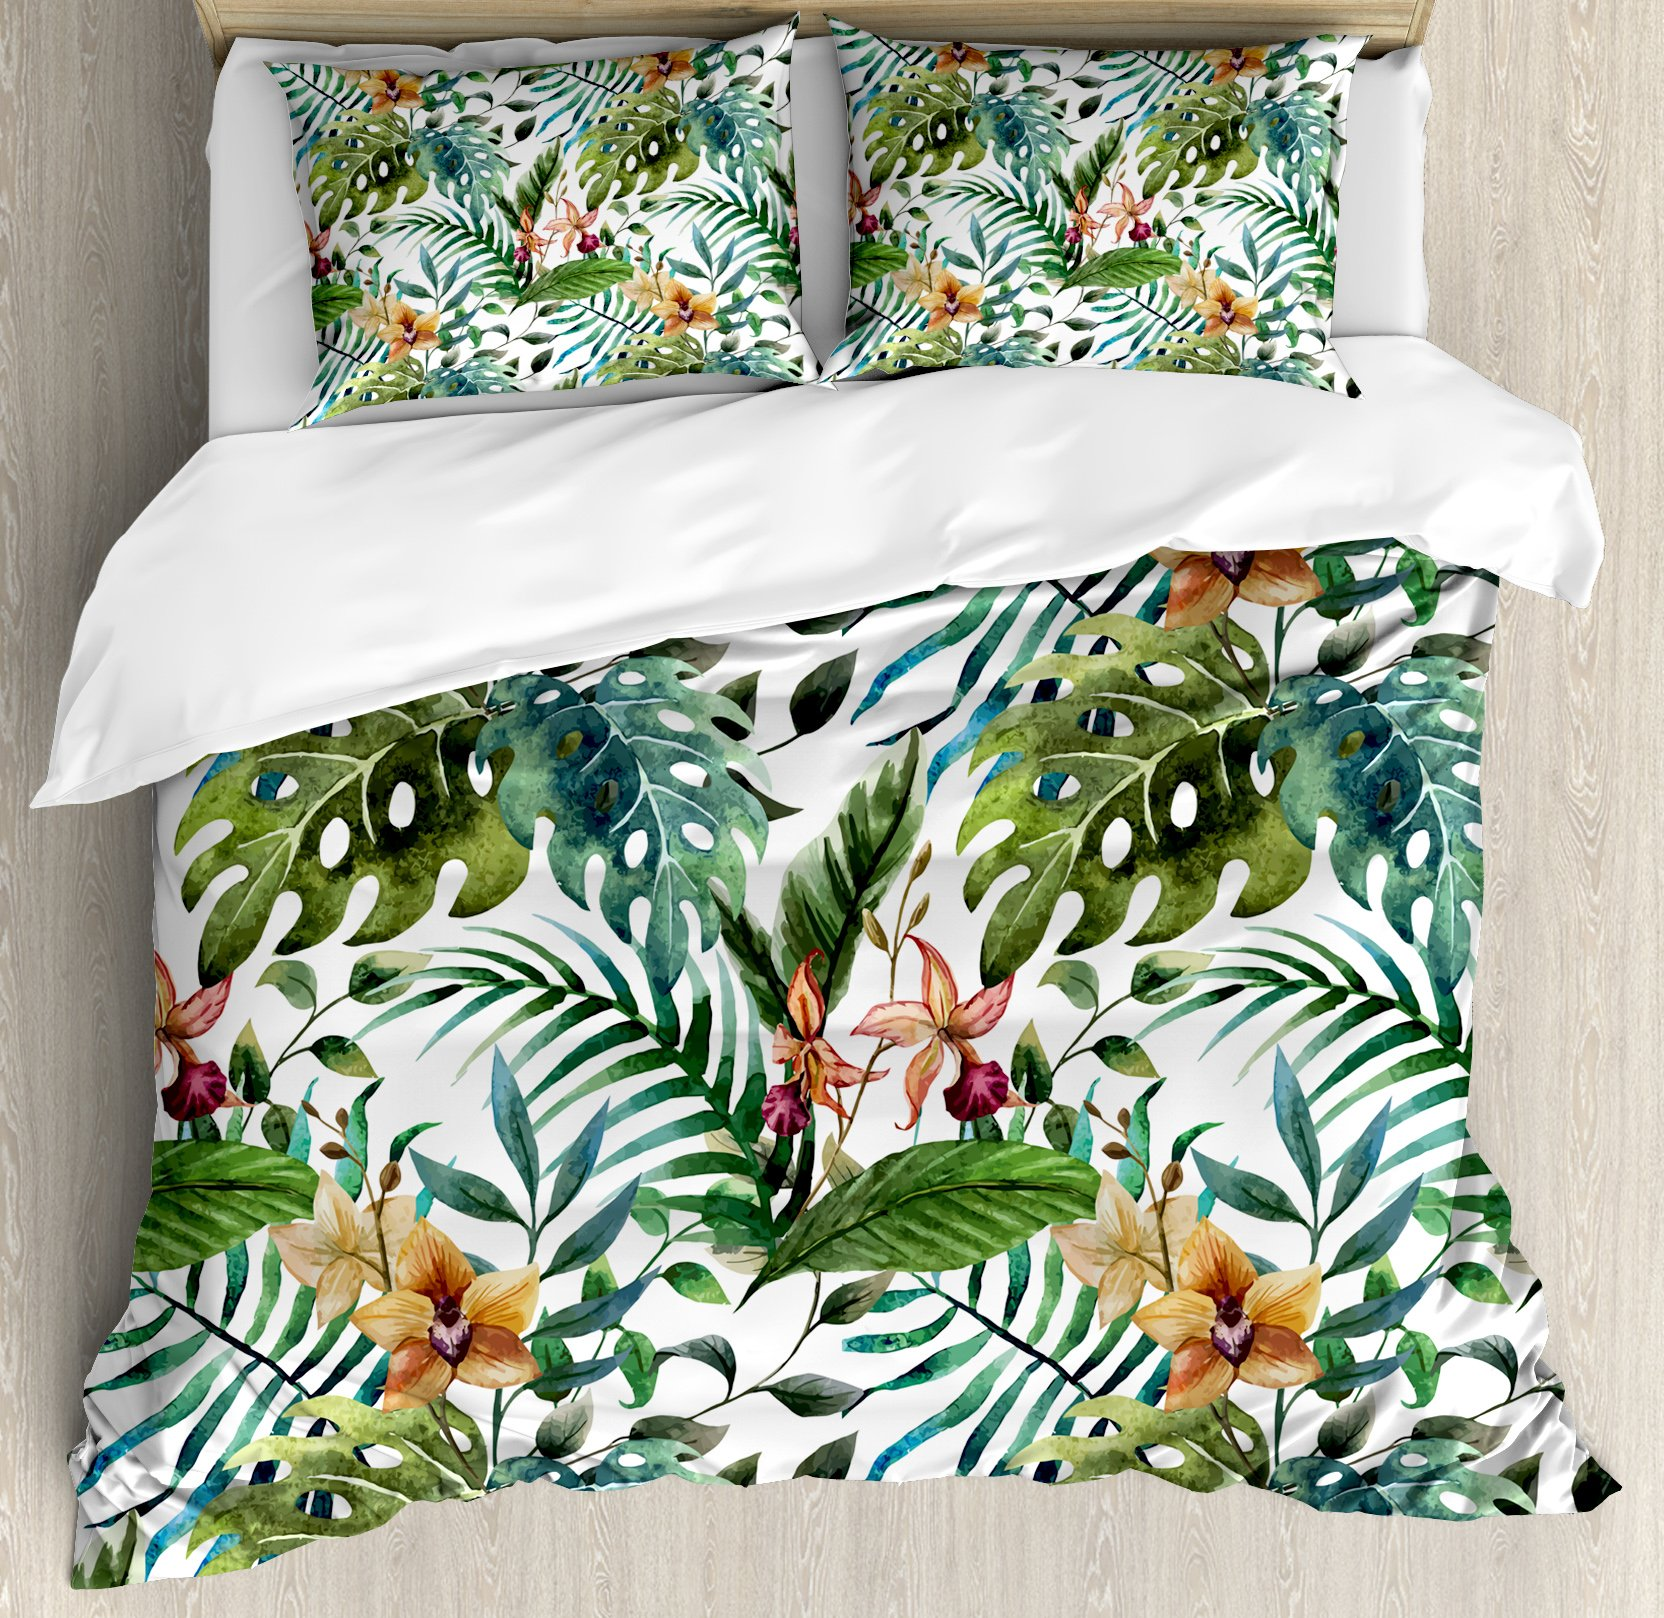 Leaf Duvet Cover Set Queen Size by Ambesonne, Vintage Retro 60s Seem Banana Palm Tree Leaves Flowers Hibiscus, Decorative 3 Piece Bedding Set with 2 Pillow Shams, Light Caramel Burgundy and Green by Ambesonne